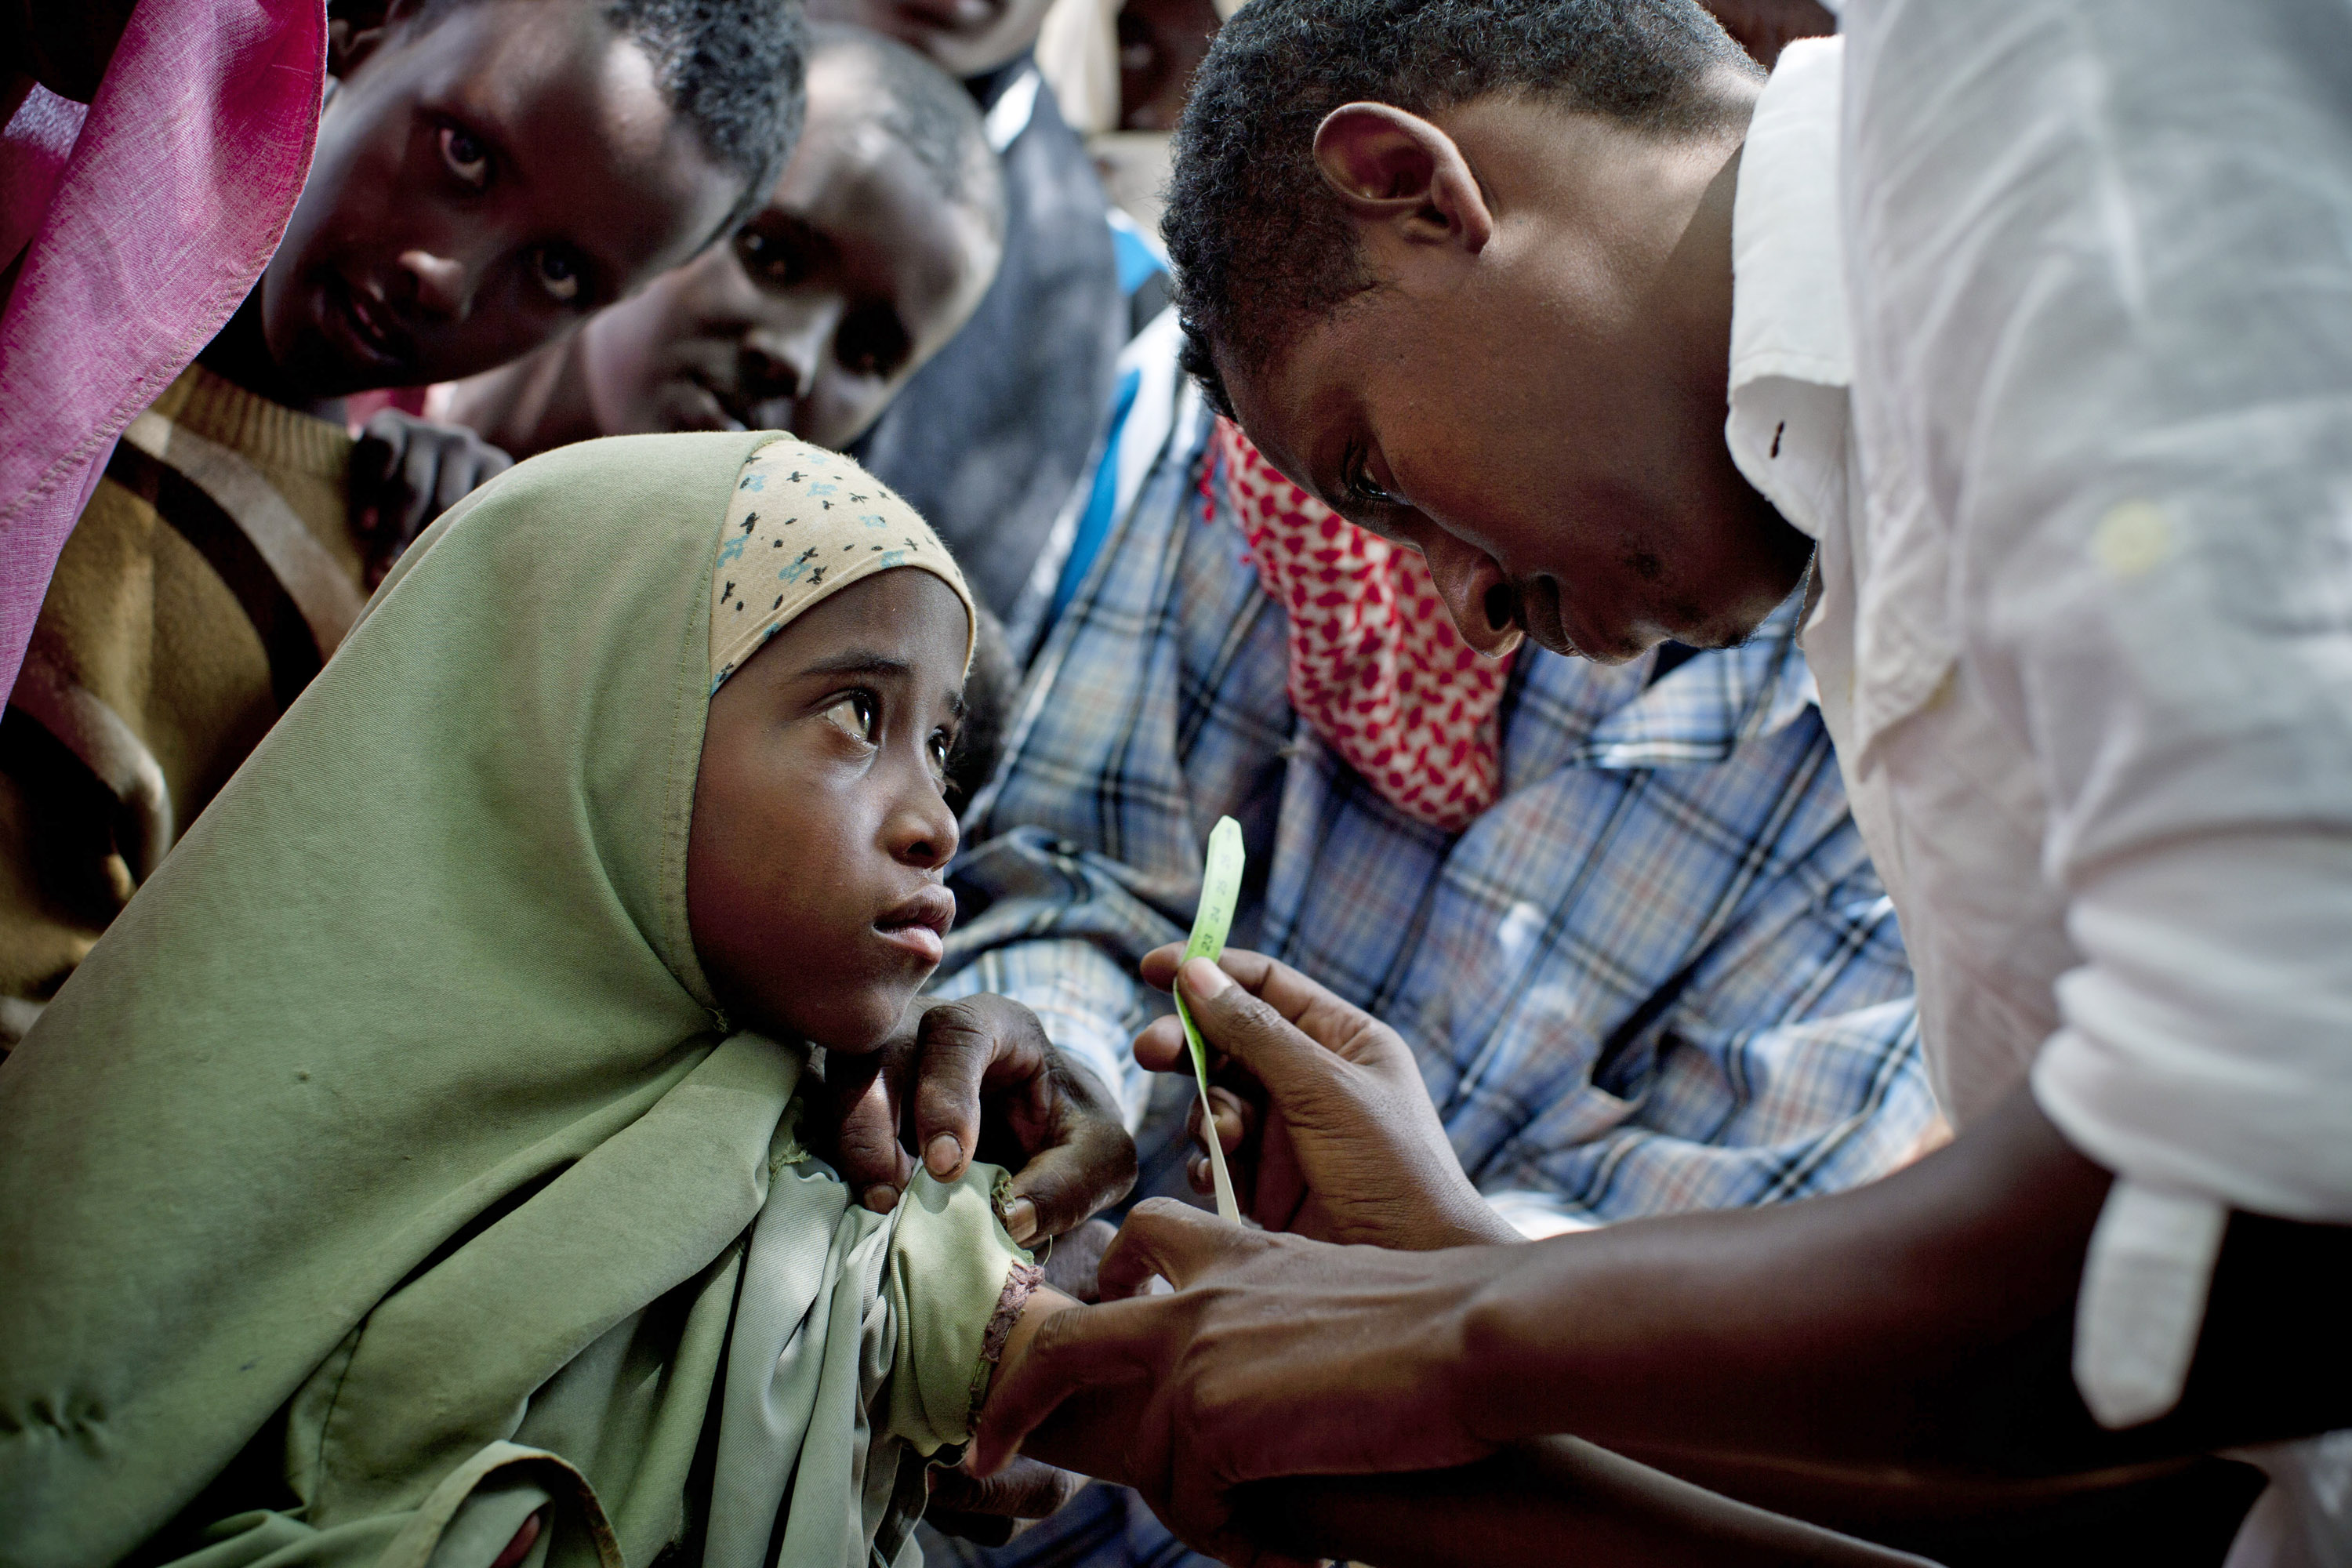 A girl has her arm measured as part of a weekly nutritional assessment organized by DIAL, a local NGO and UNICEF partner, in Ras Kamboni, Somalia (July 2012)